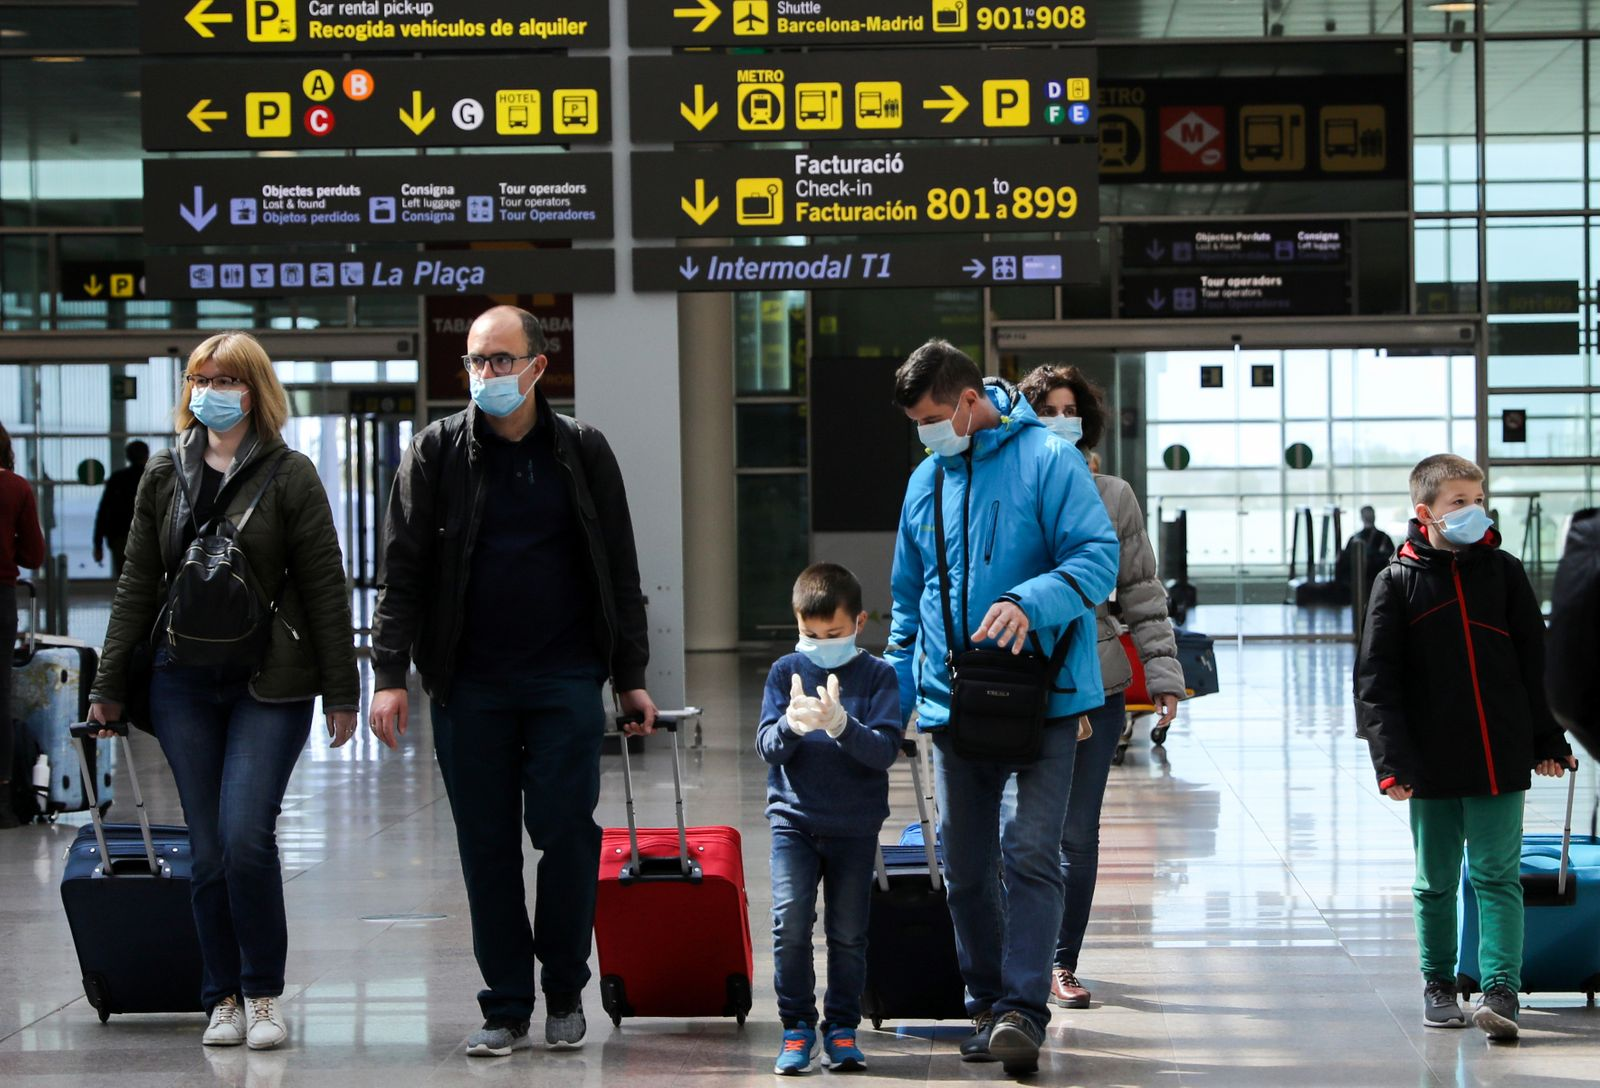 Families wear protective face masks as they walk with their luggage at Tarradellas Barcelona-El Prat Airport, after further cases of coronavirus were confirmed in Barcelona